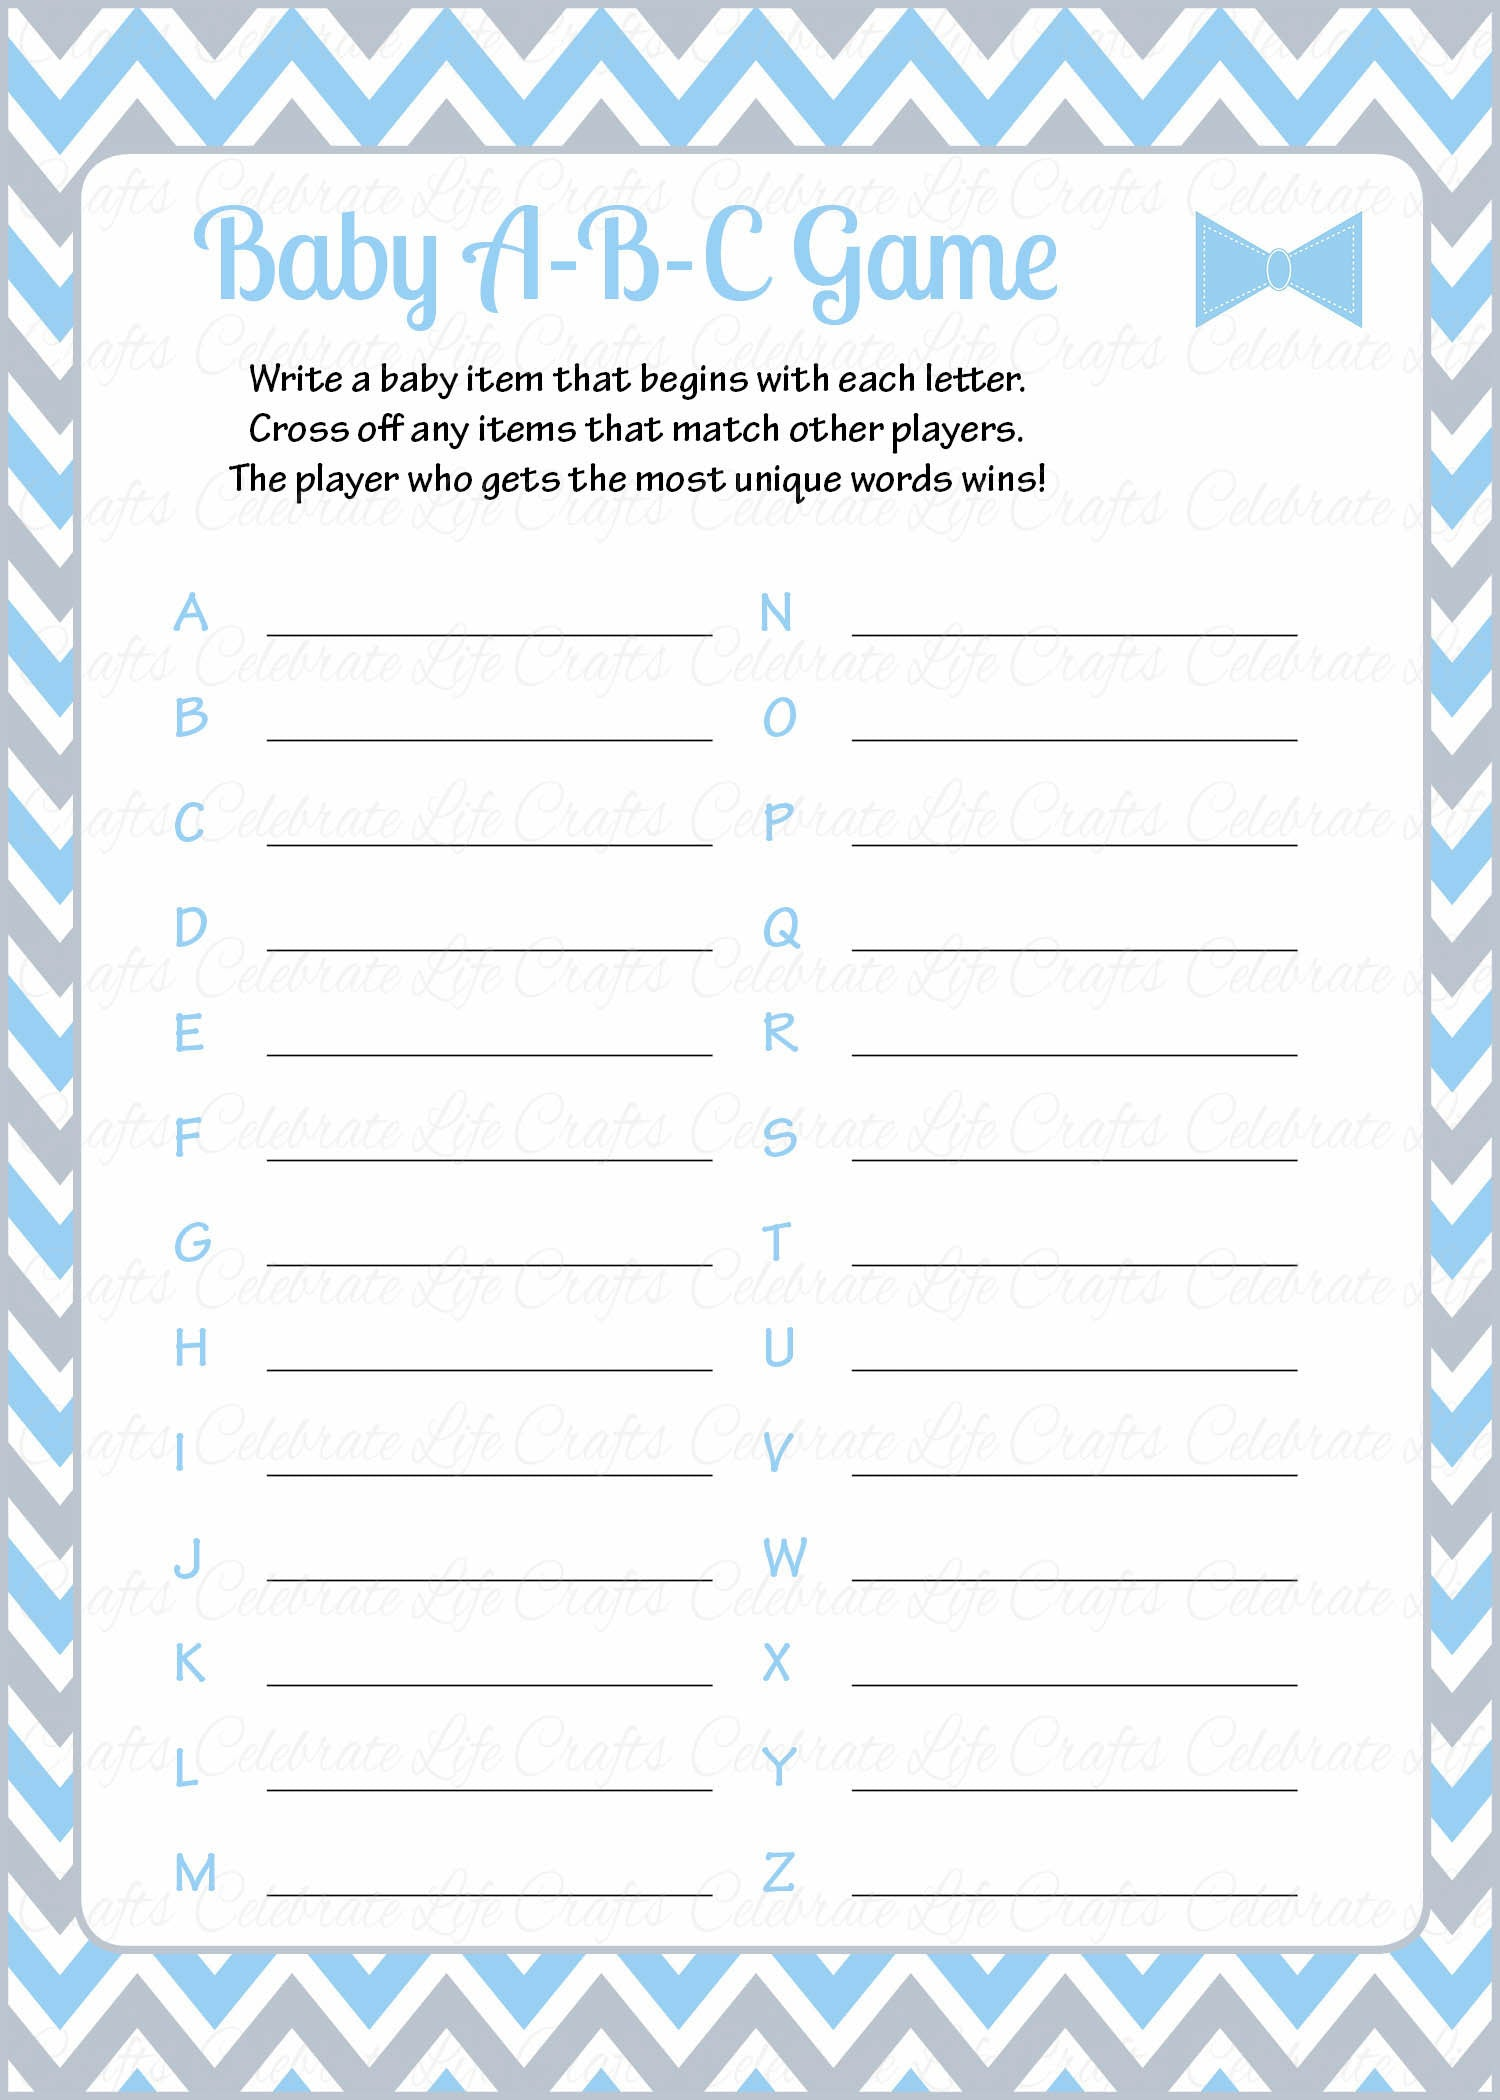 Baby ABC Game   PRINTABLE DOWNLOAD   Blue Gray Bowtie   Little Man Baby  Shower Game   B1008.